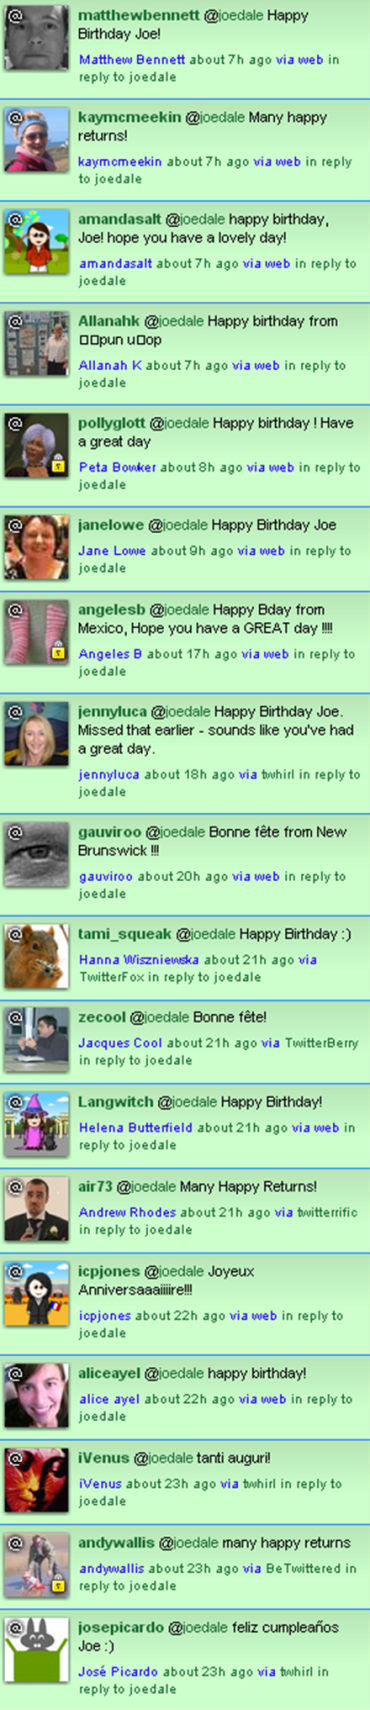 40th Birthday Tweets